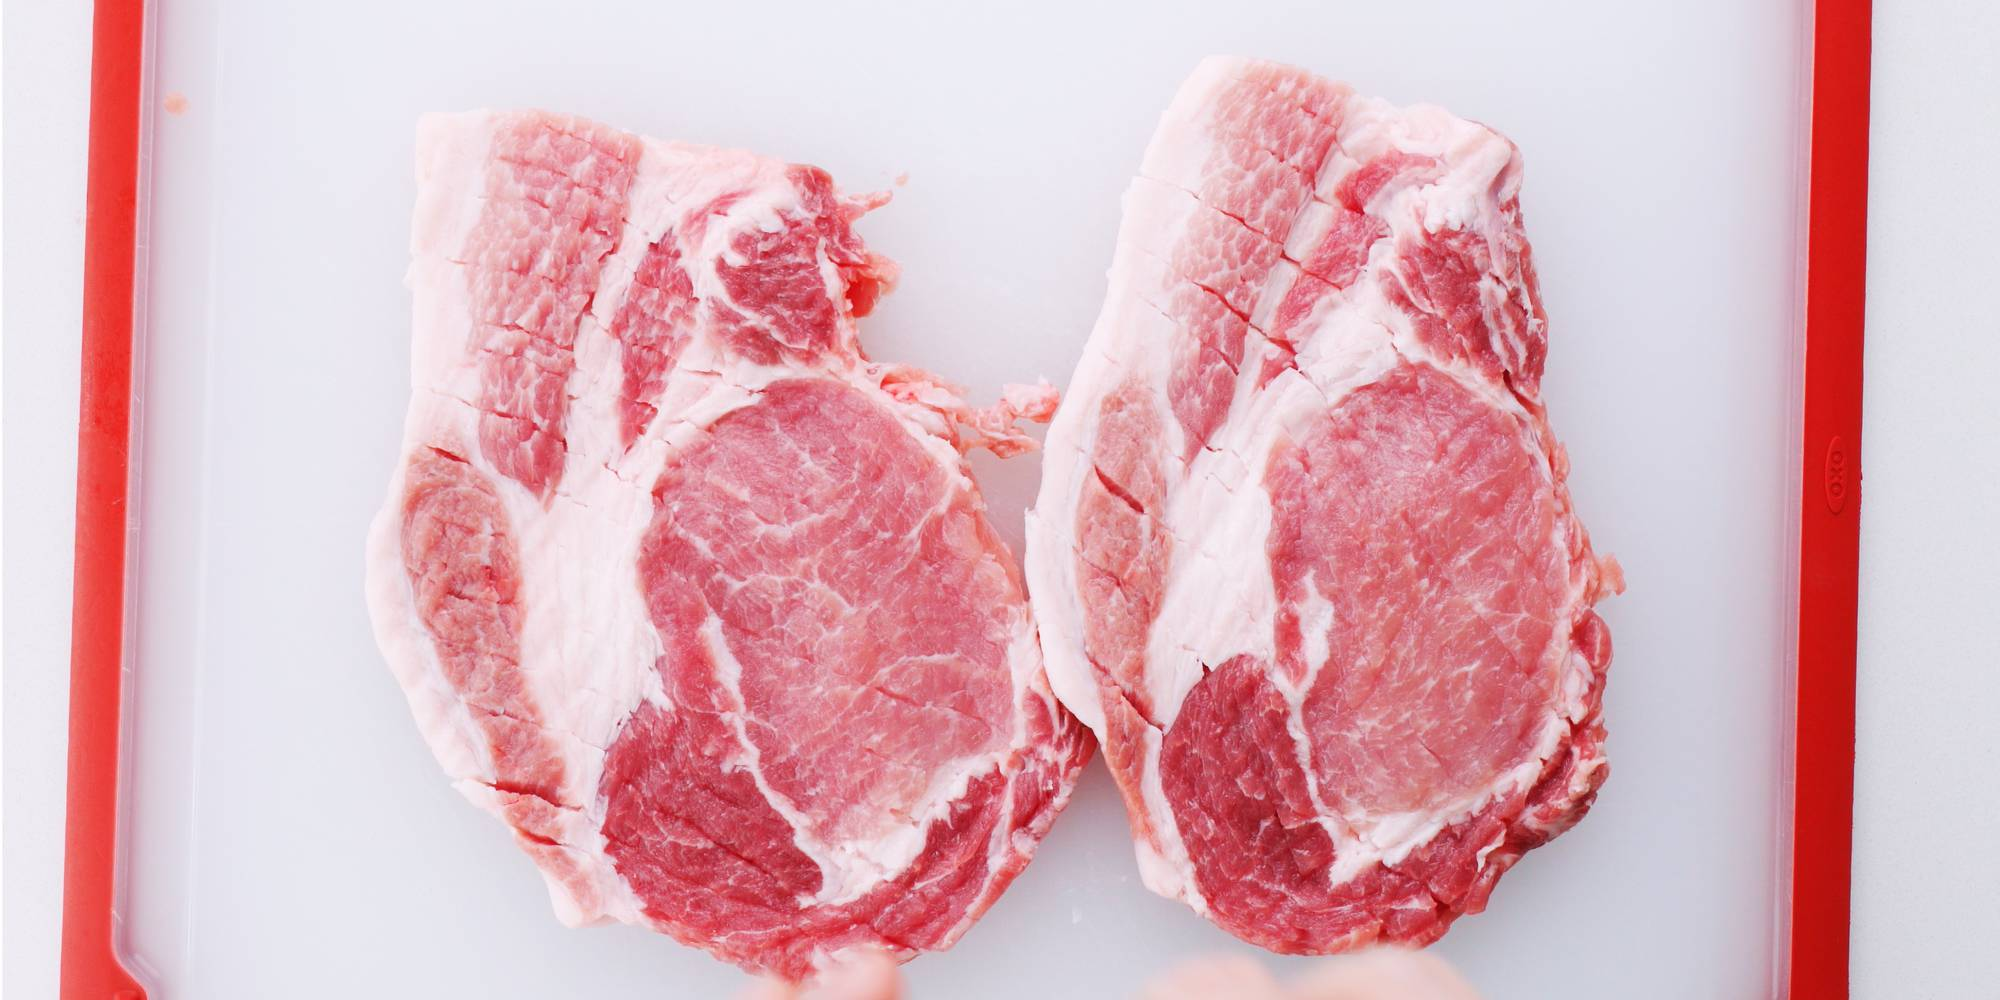 Pork chops pounded out with a mallet to tenderize and make thin cutlets.